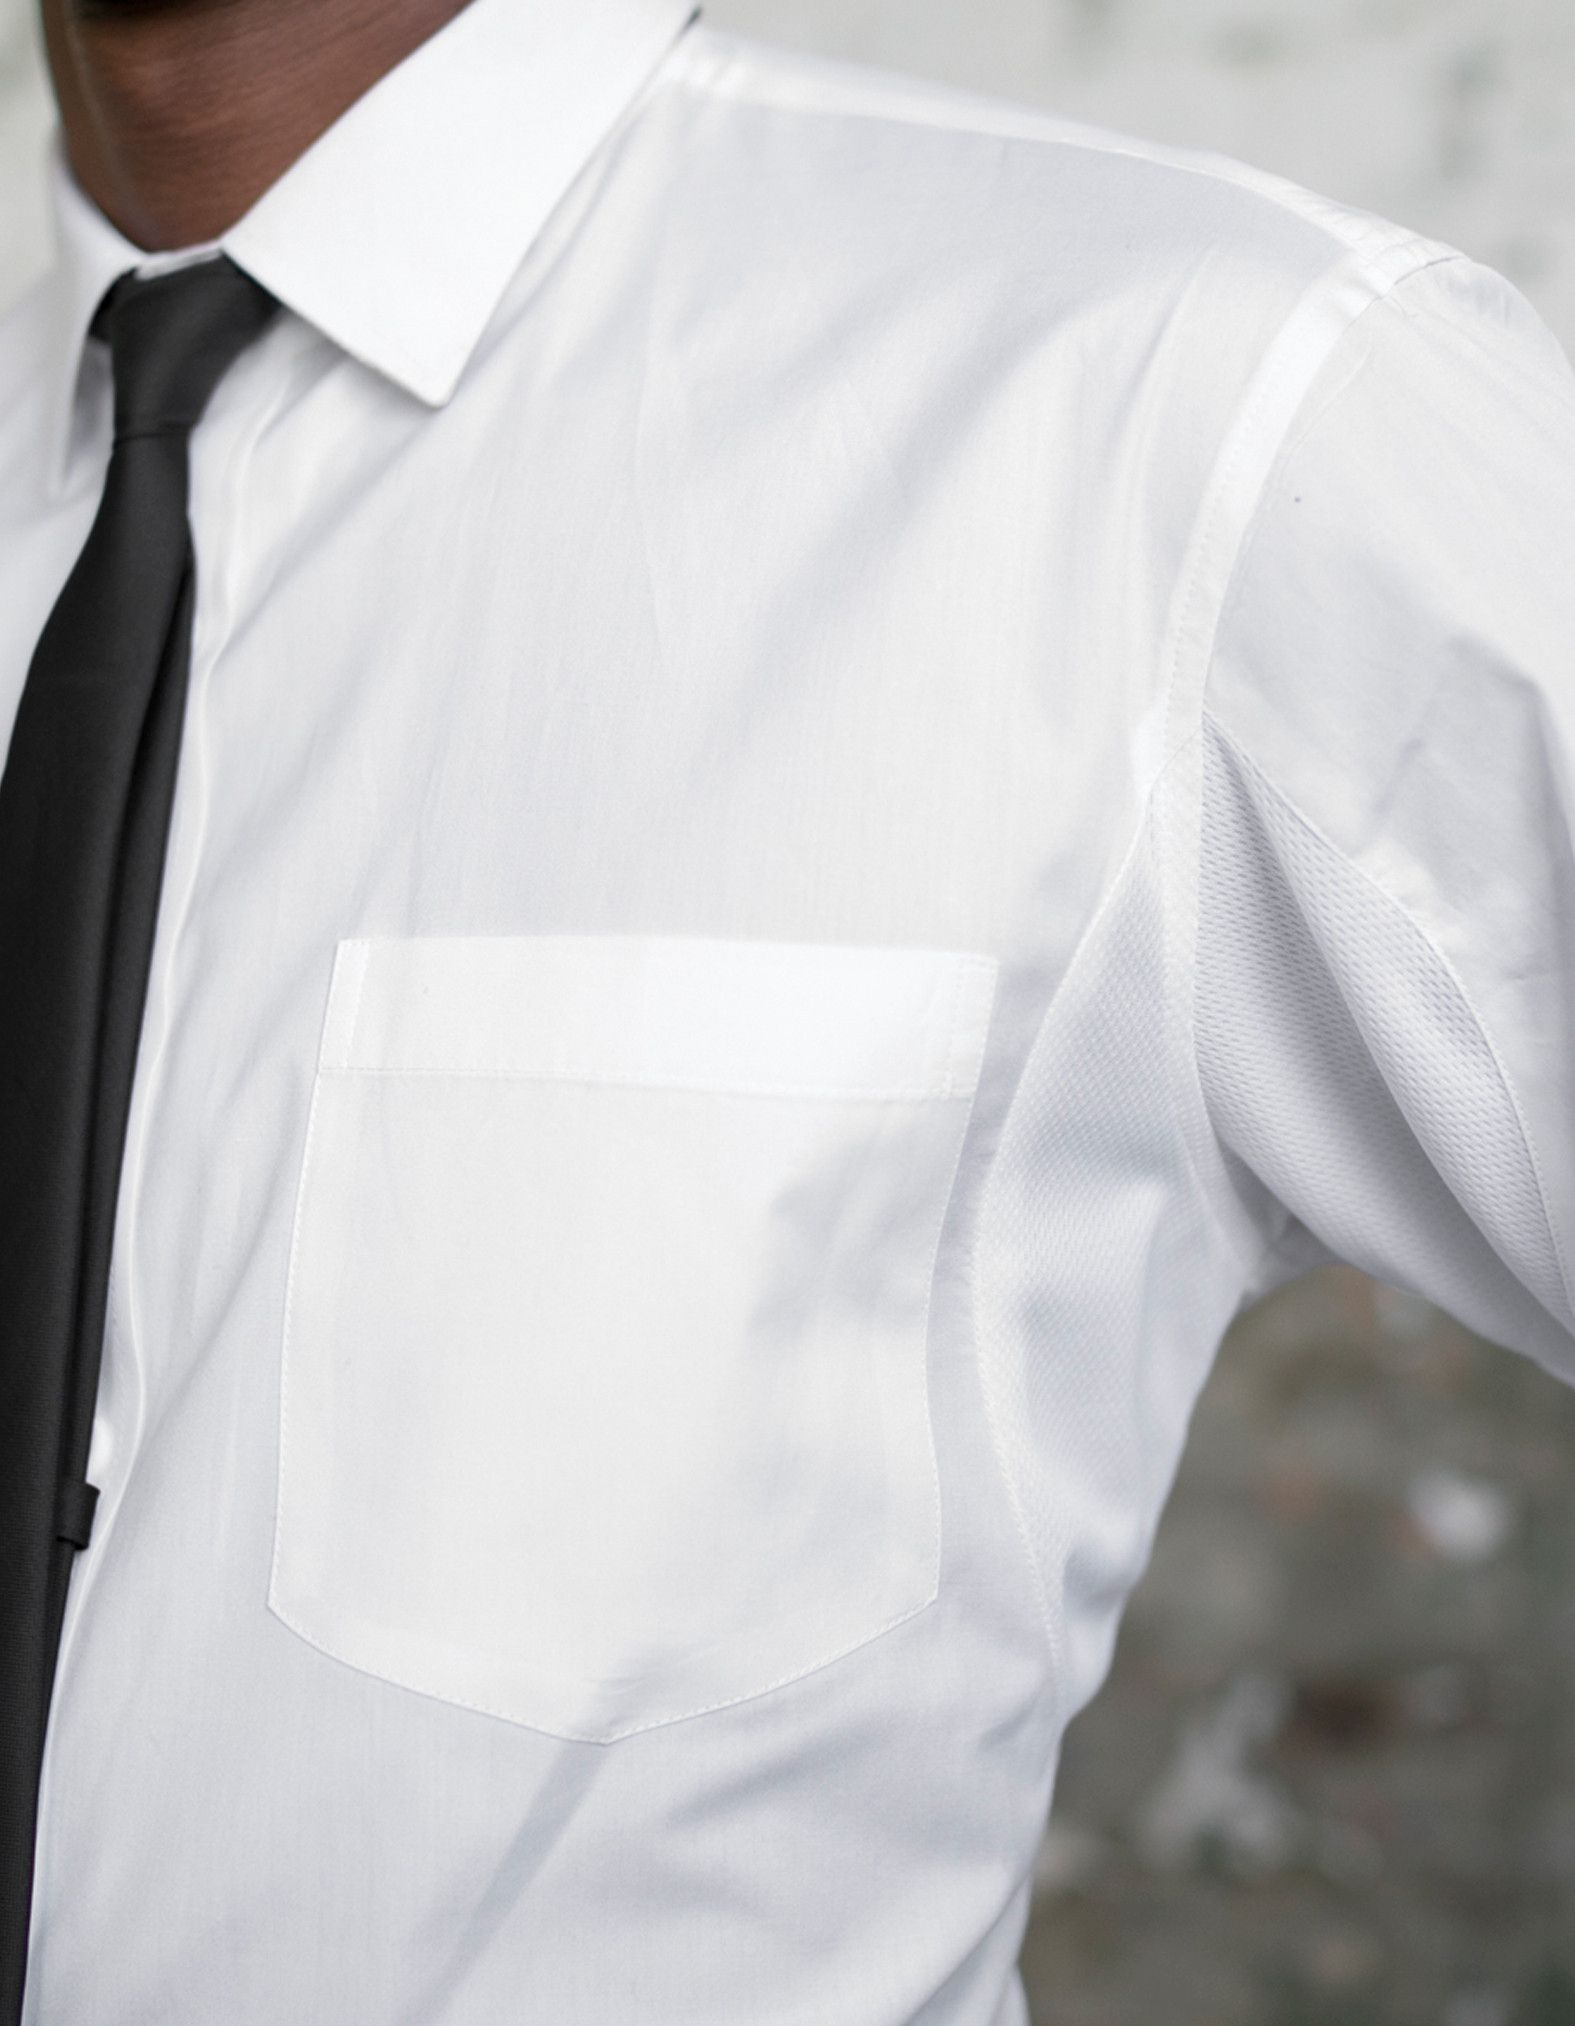 dress shirts with fast drying underarms undershirt guy blog